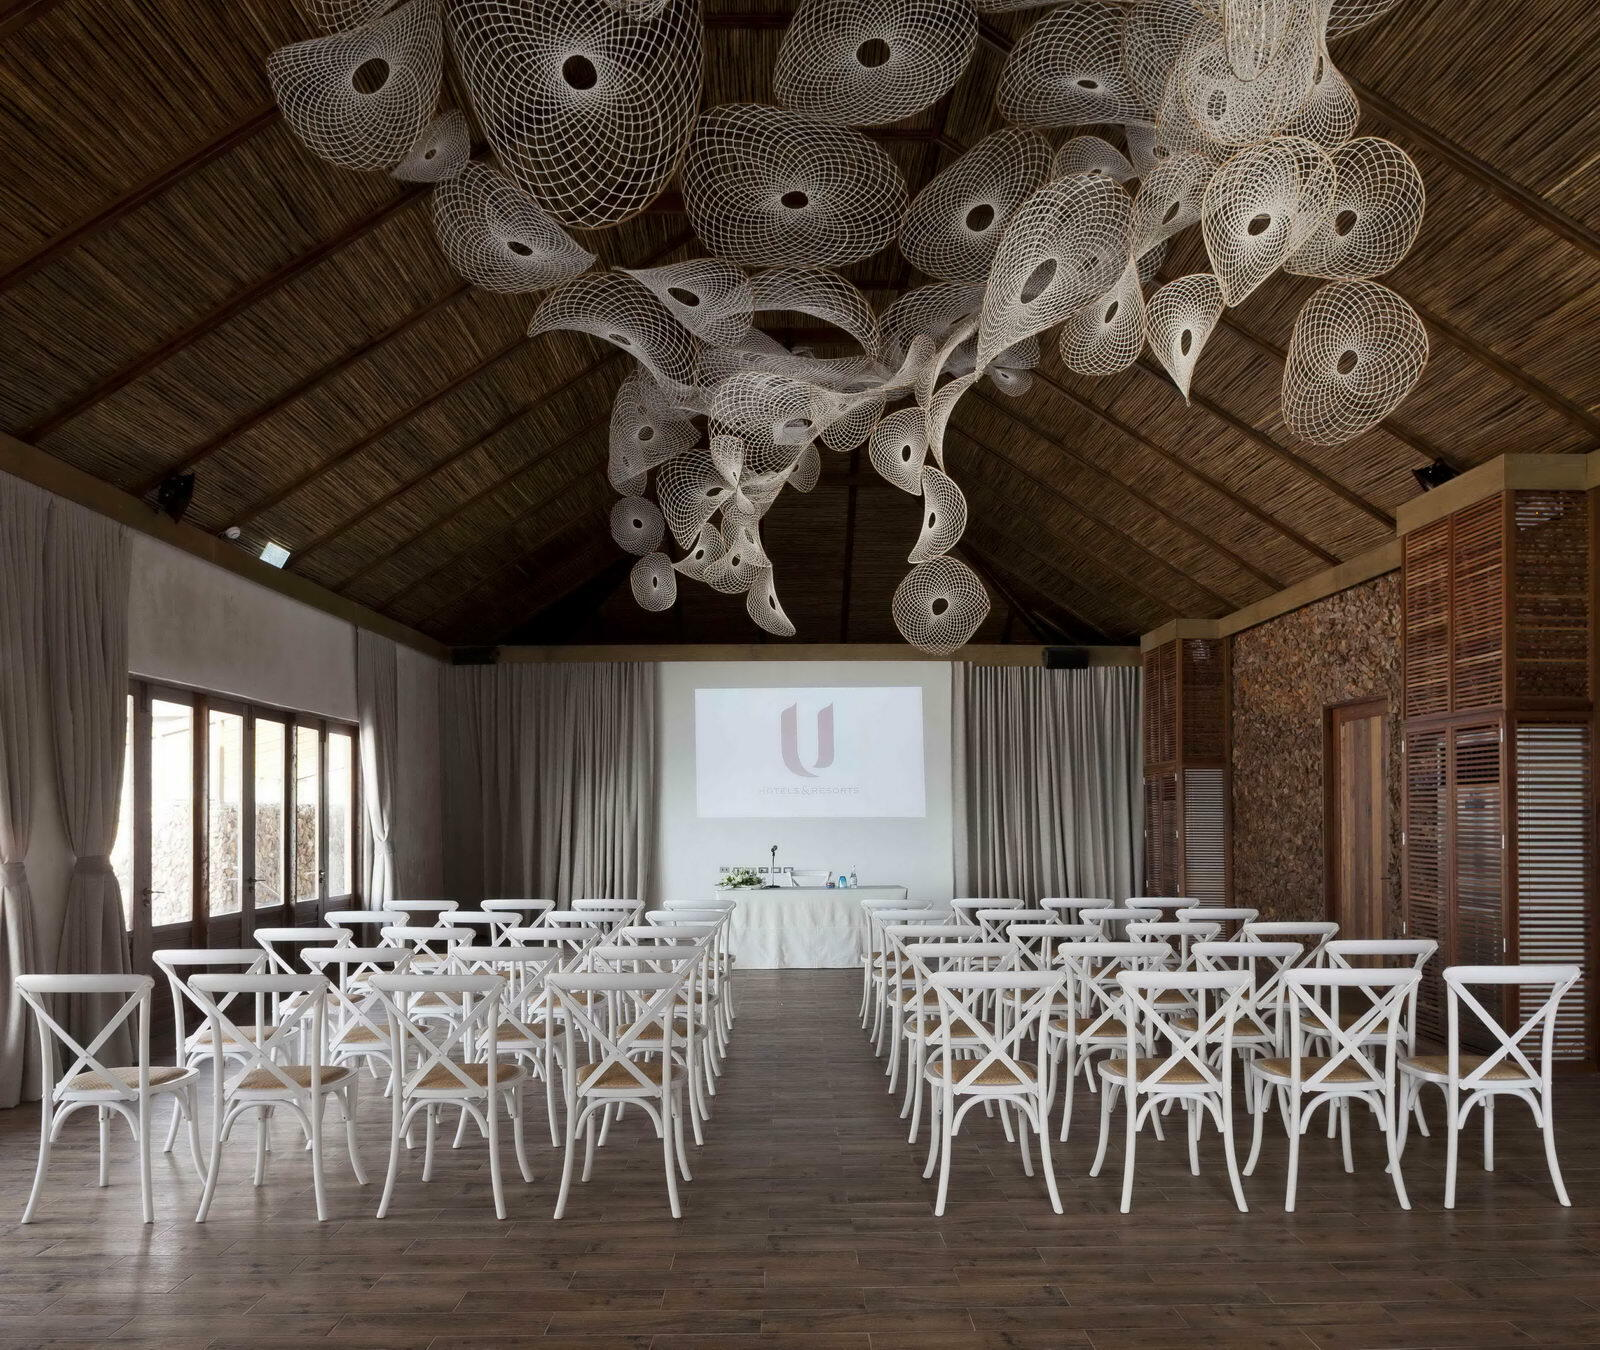 U Pattaya Meeting Venue